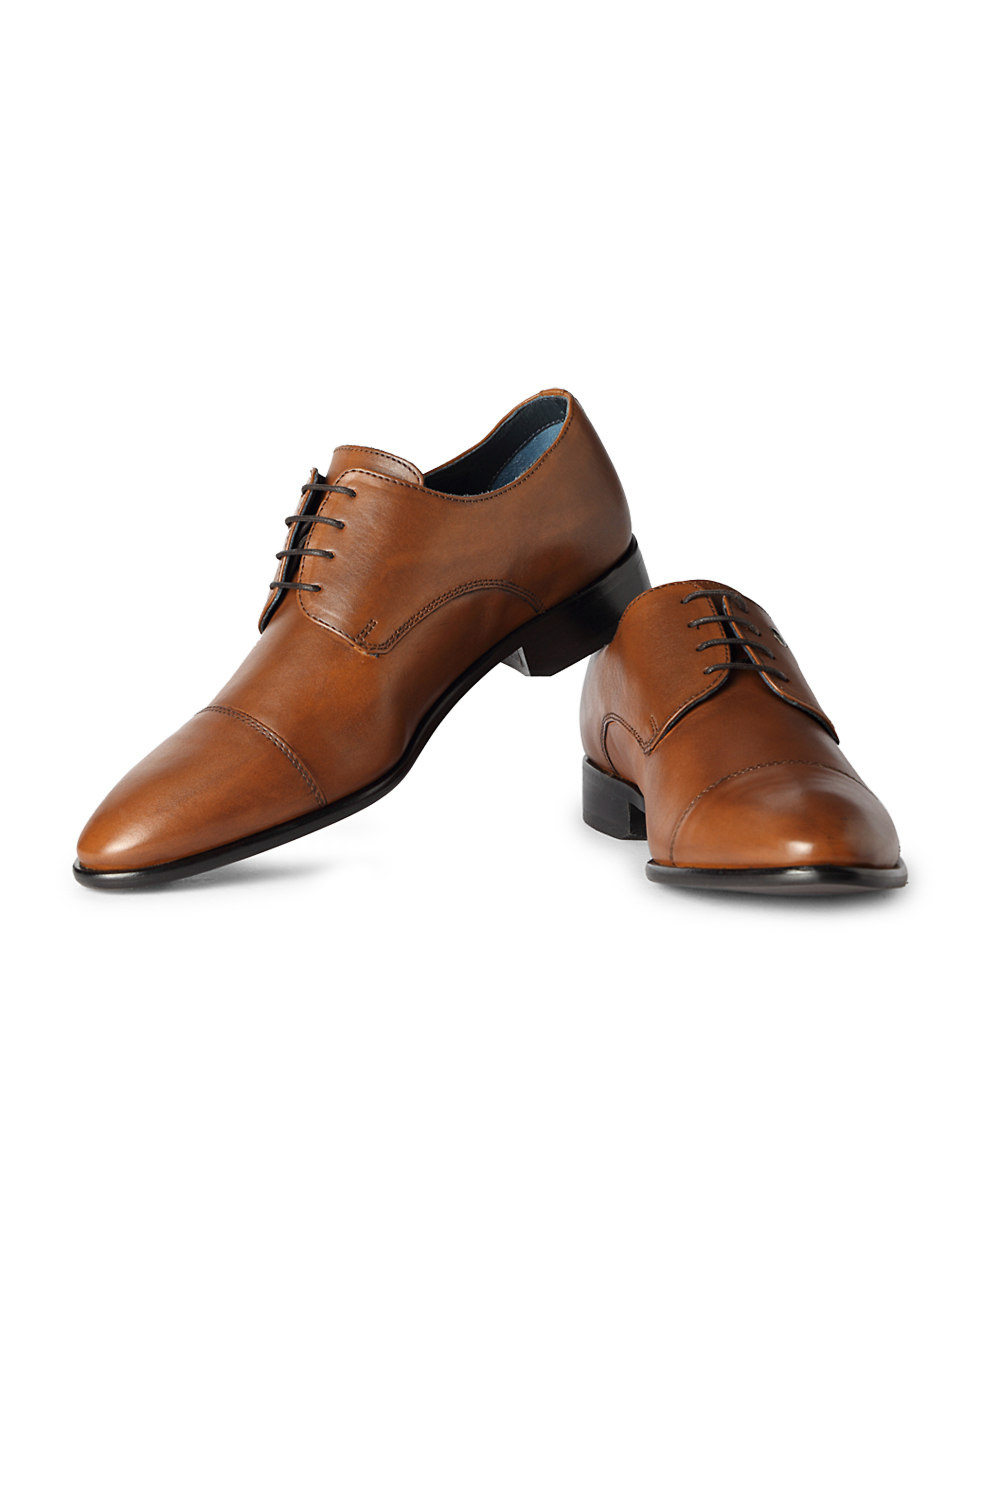 858c101ae0b09 Louis Philippe Footwear, Louis Philippe Brown Lace Up Shoes for Men at  Louisphilippe.com